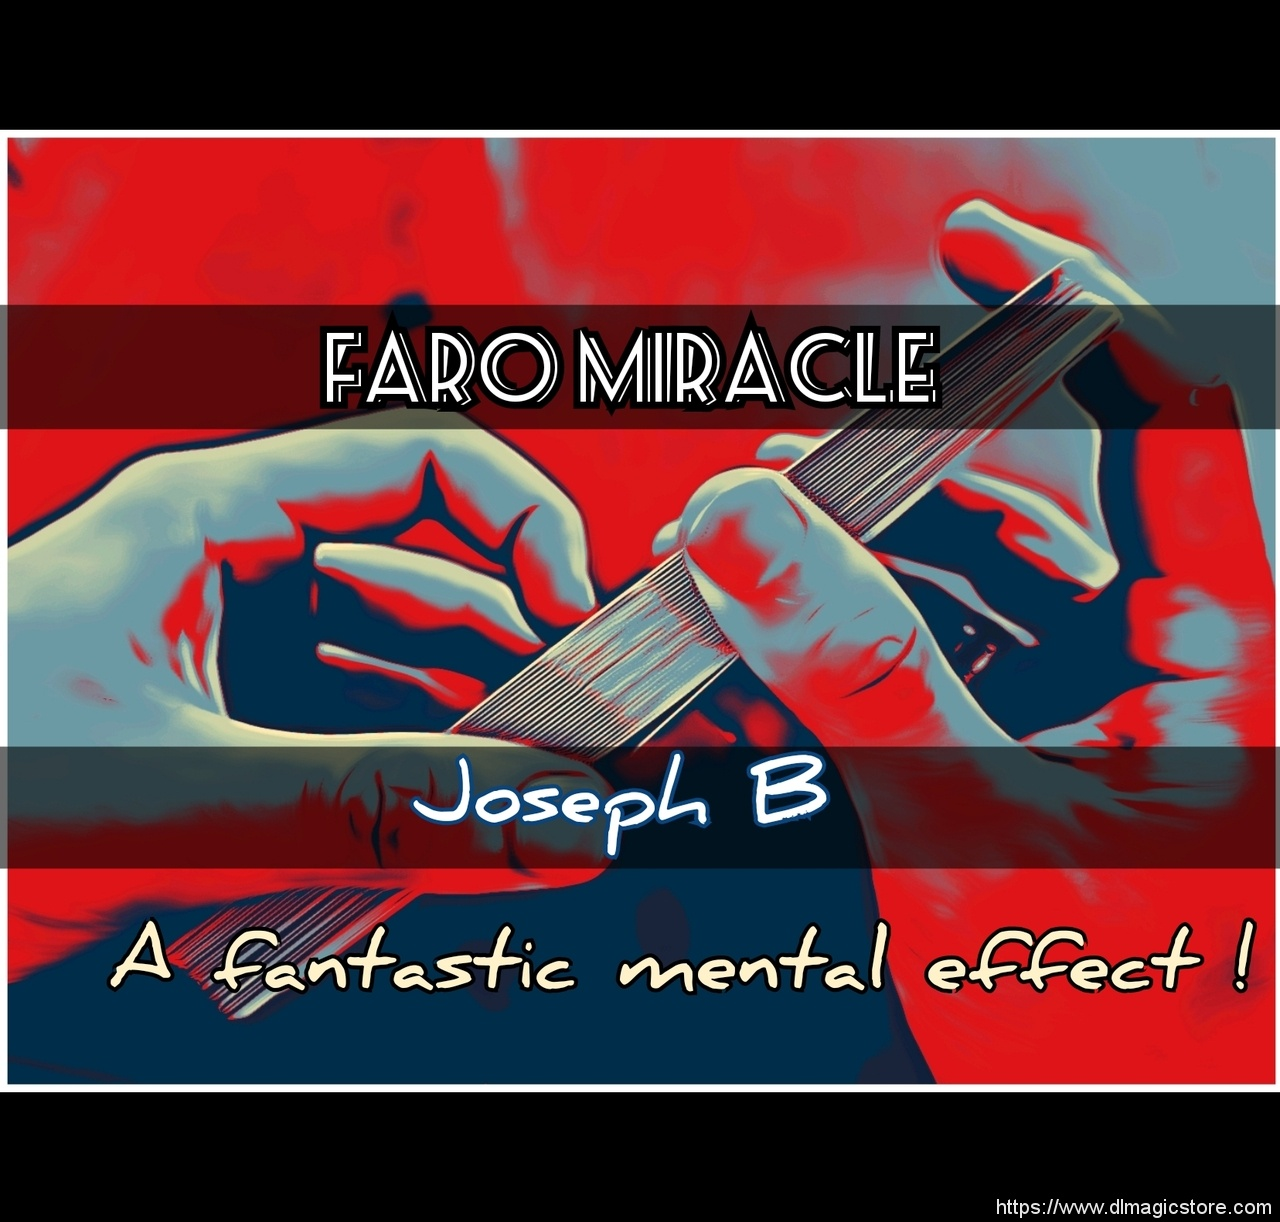 FARO MIRACLE by Joseph B. (Instant Download)